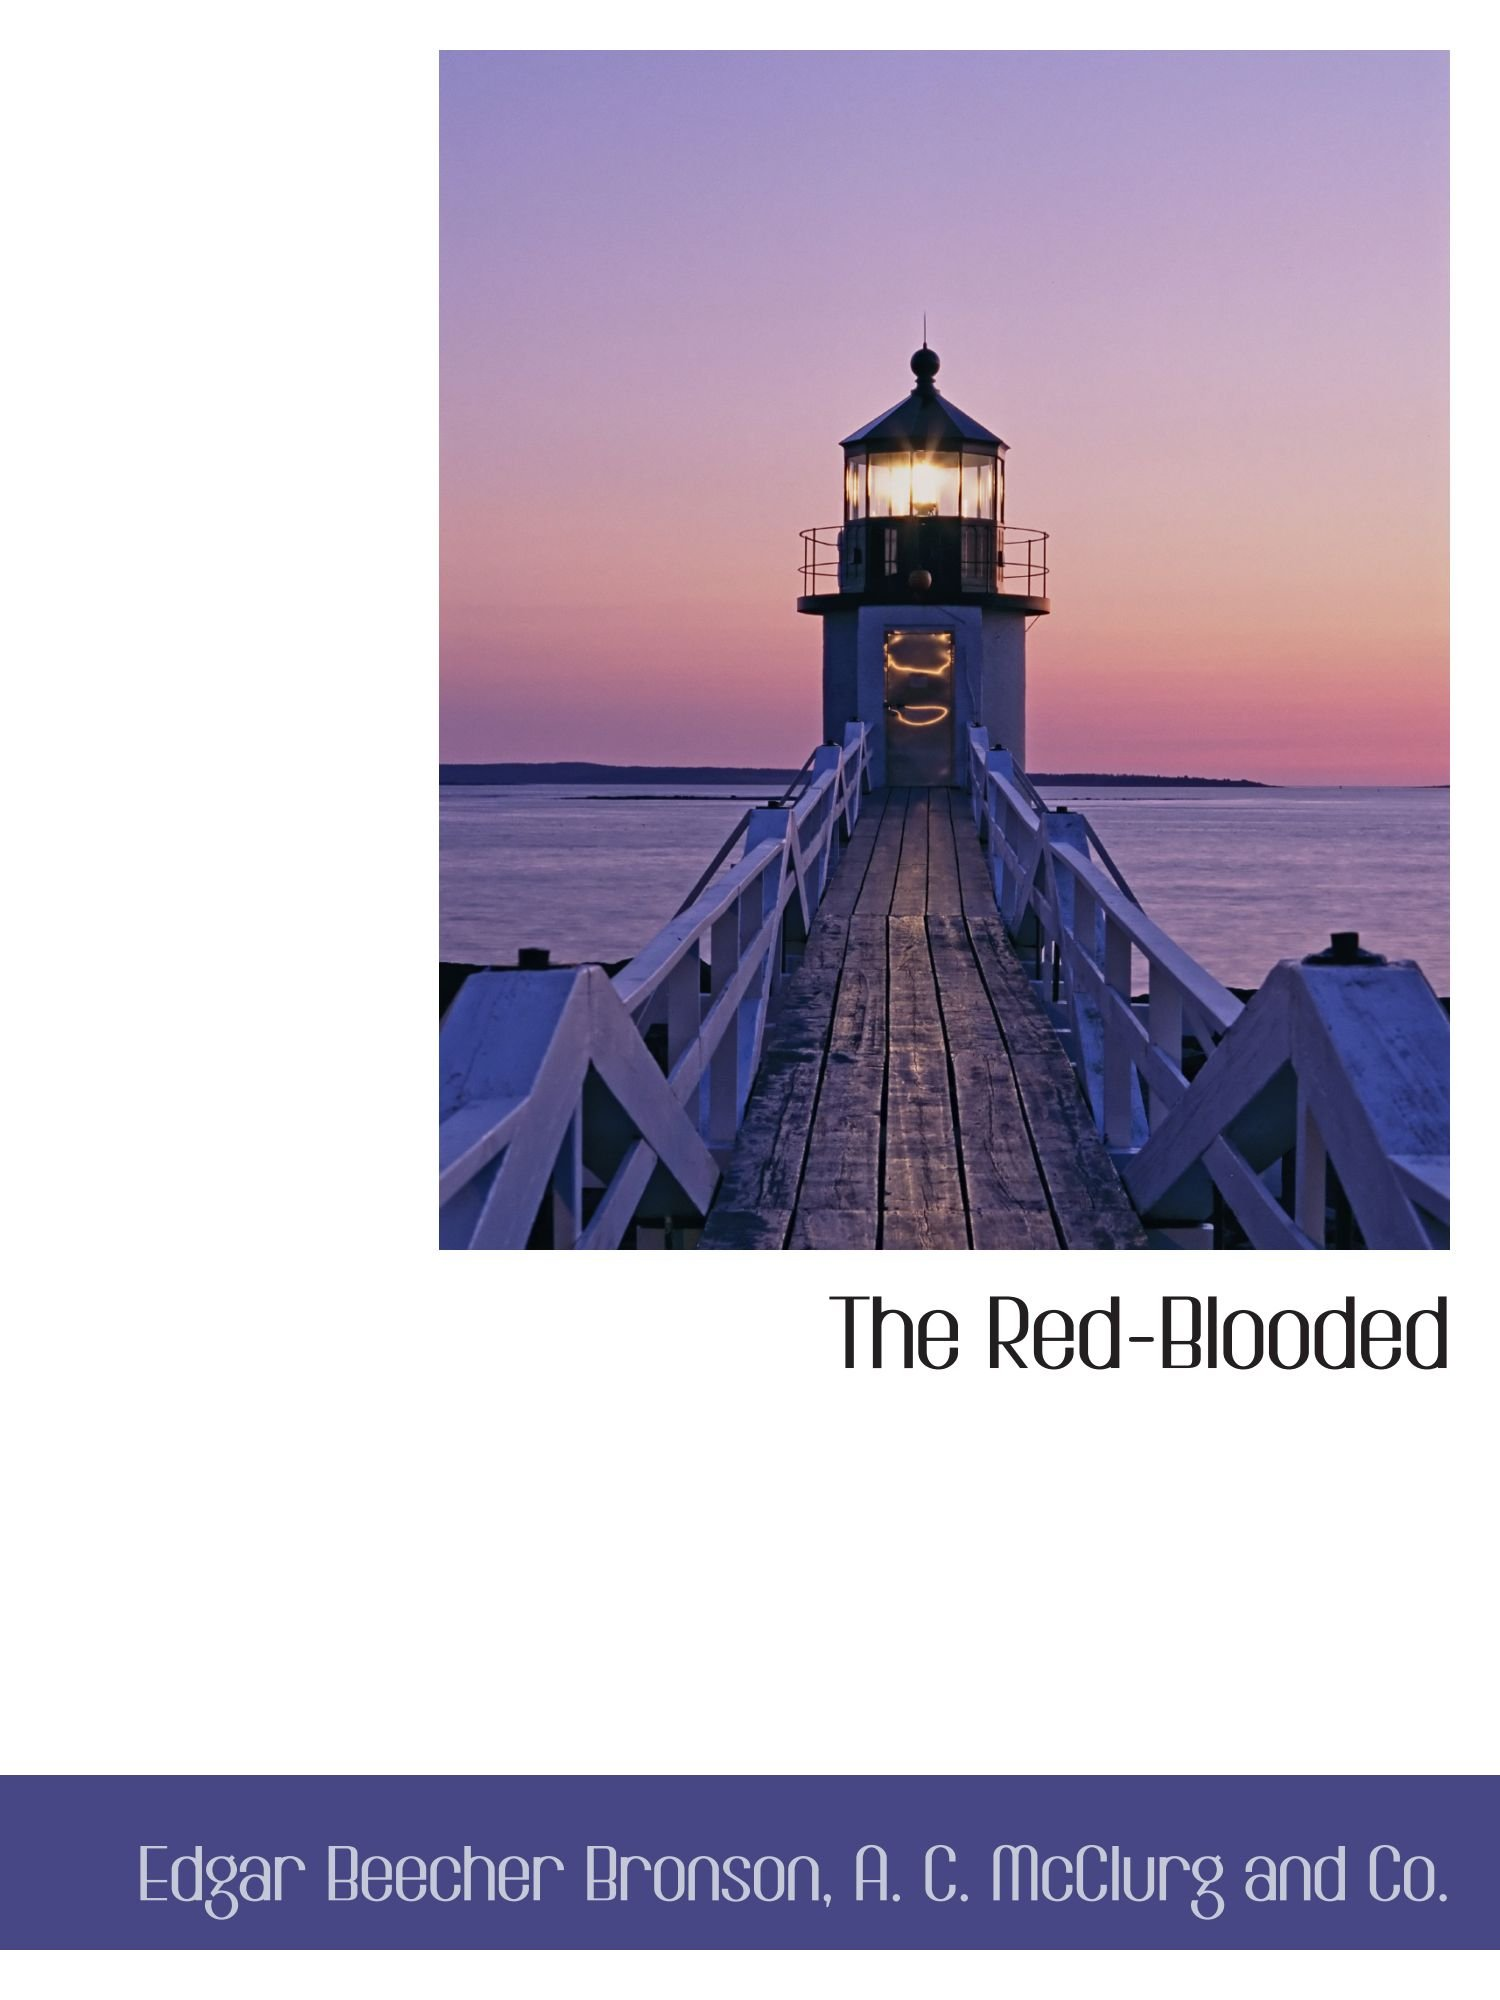 The Red-Blooded ebook